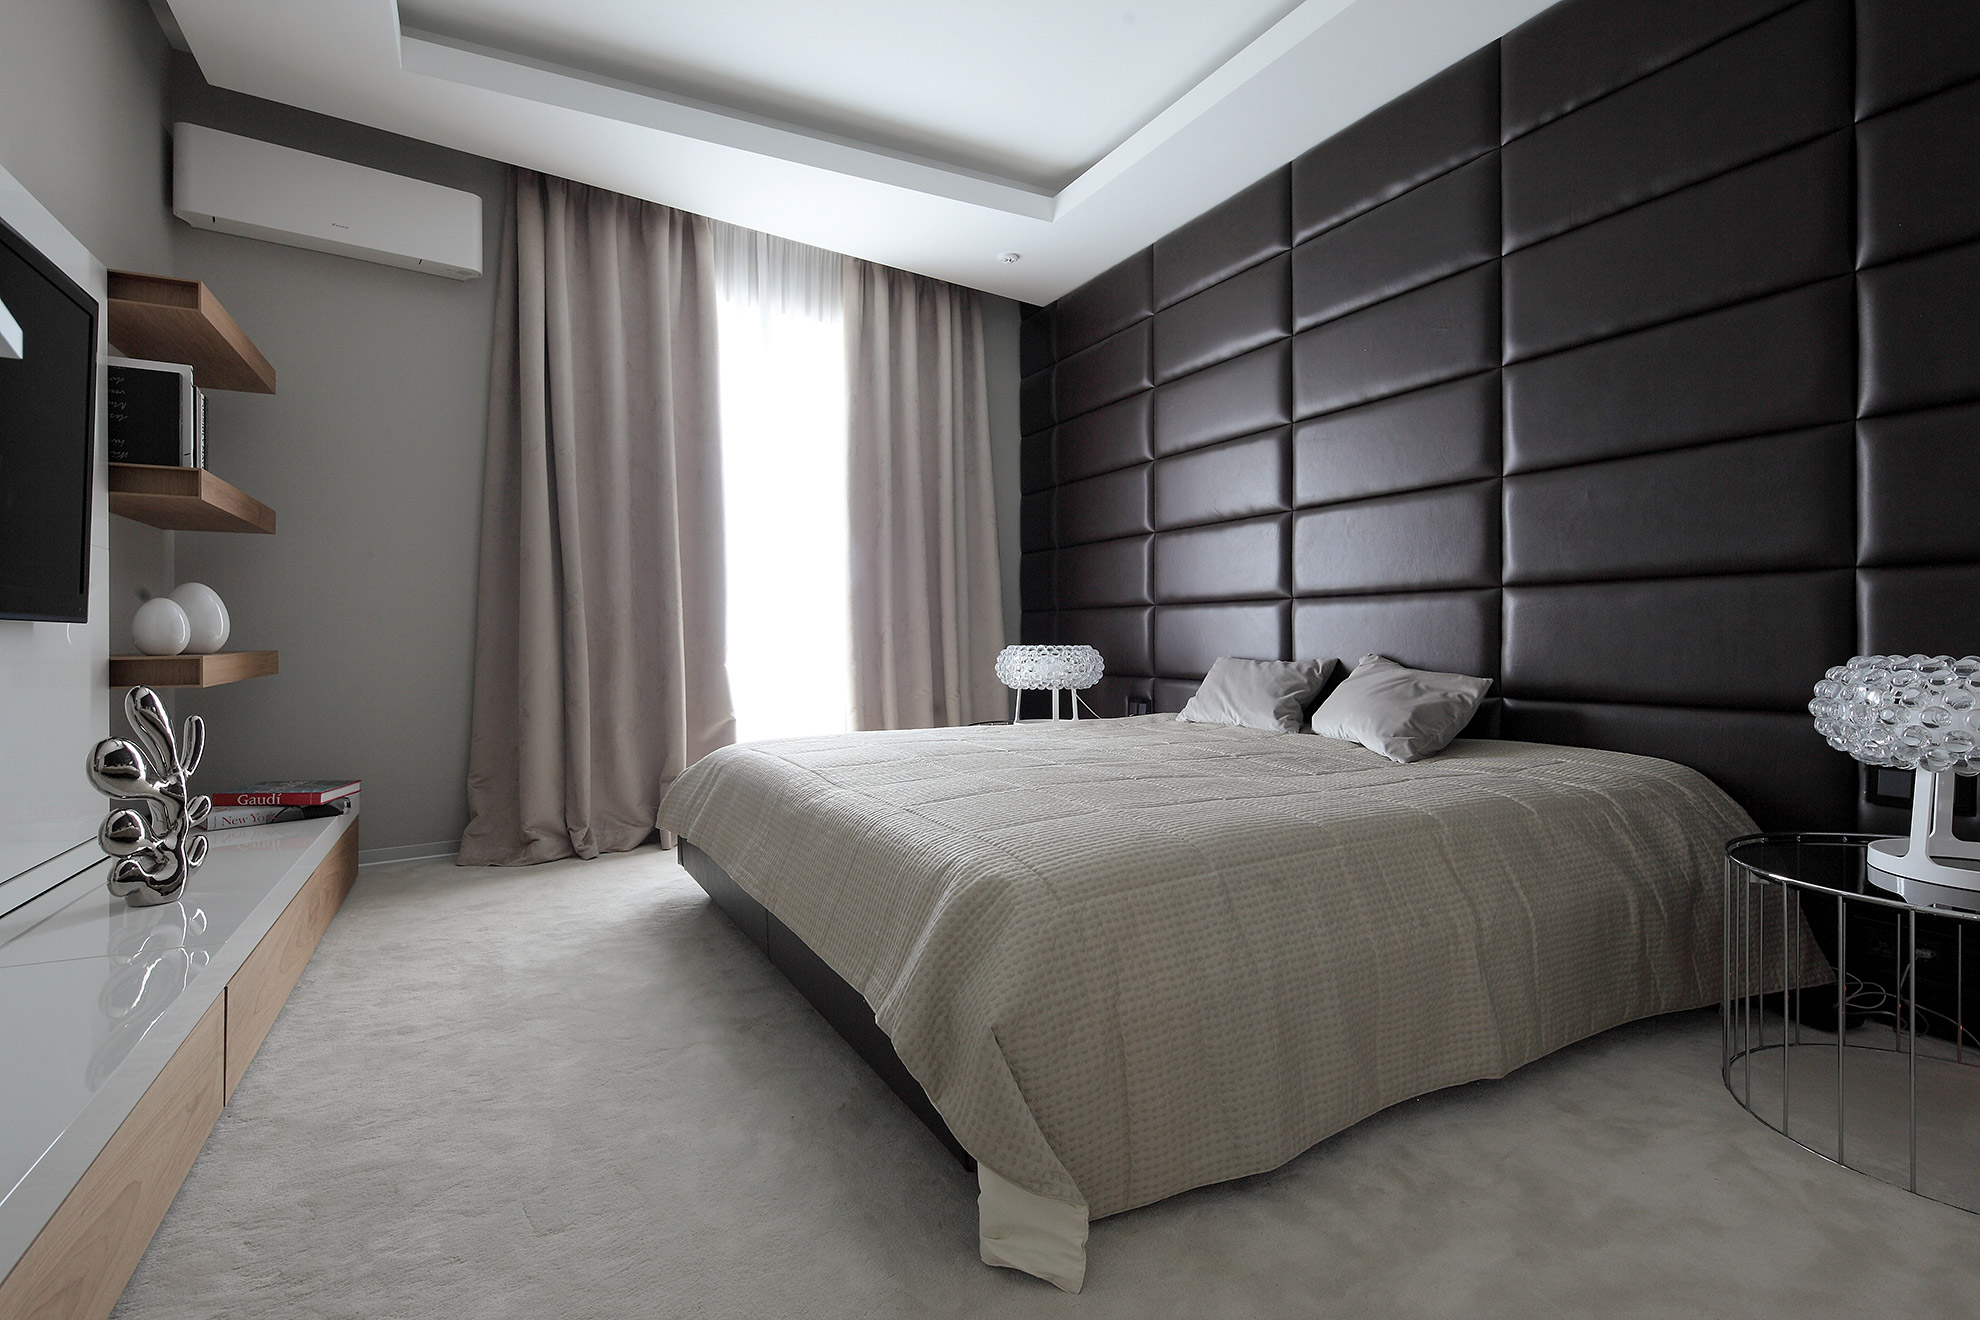 Faux leather panels in a bedroom